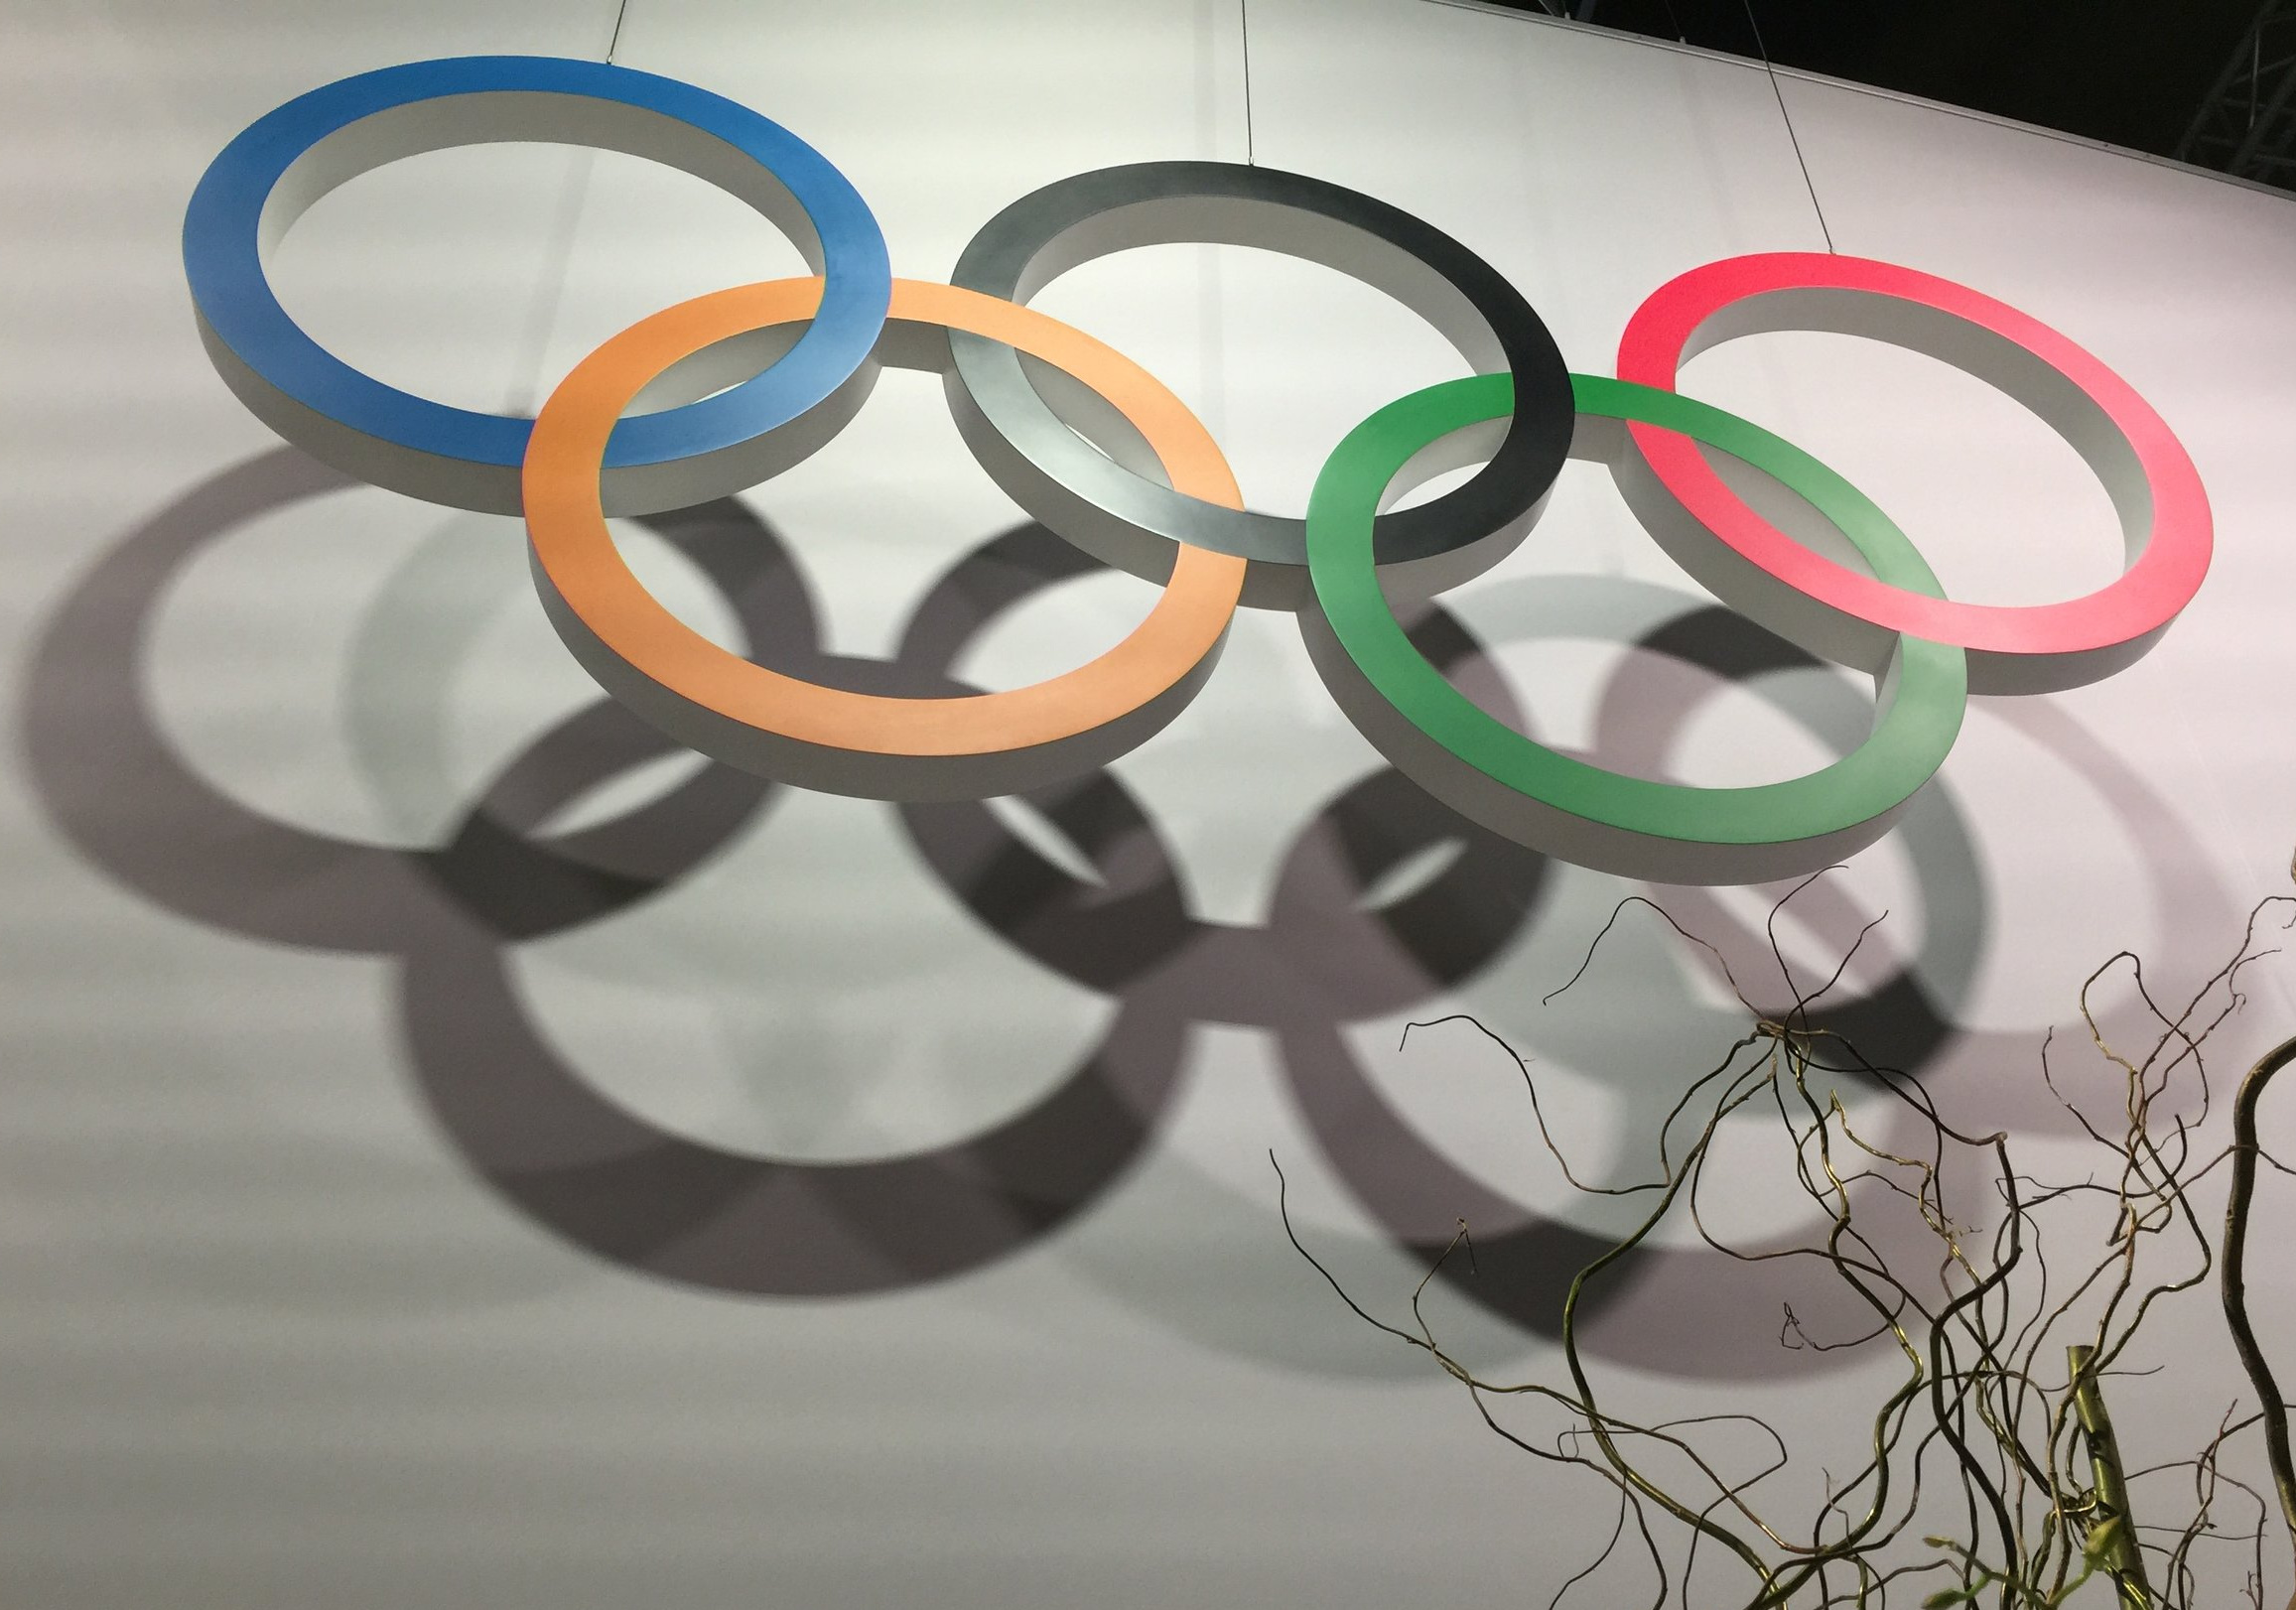 20 years translating & transcreating articles, documents, contracts, books & manuals for the Olympic Movement.